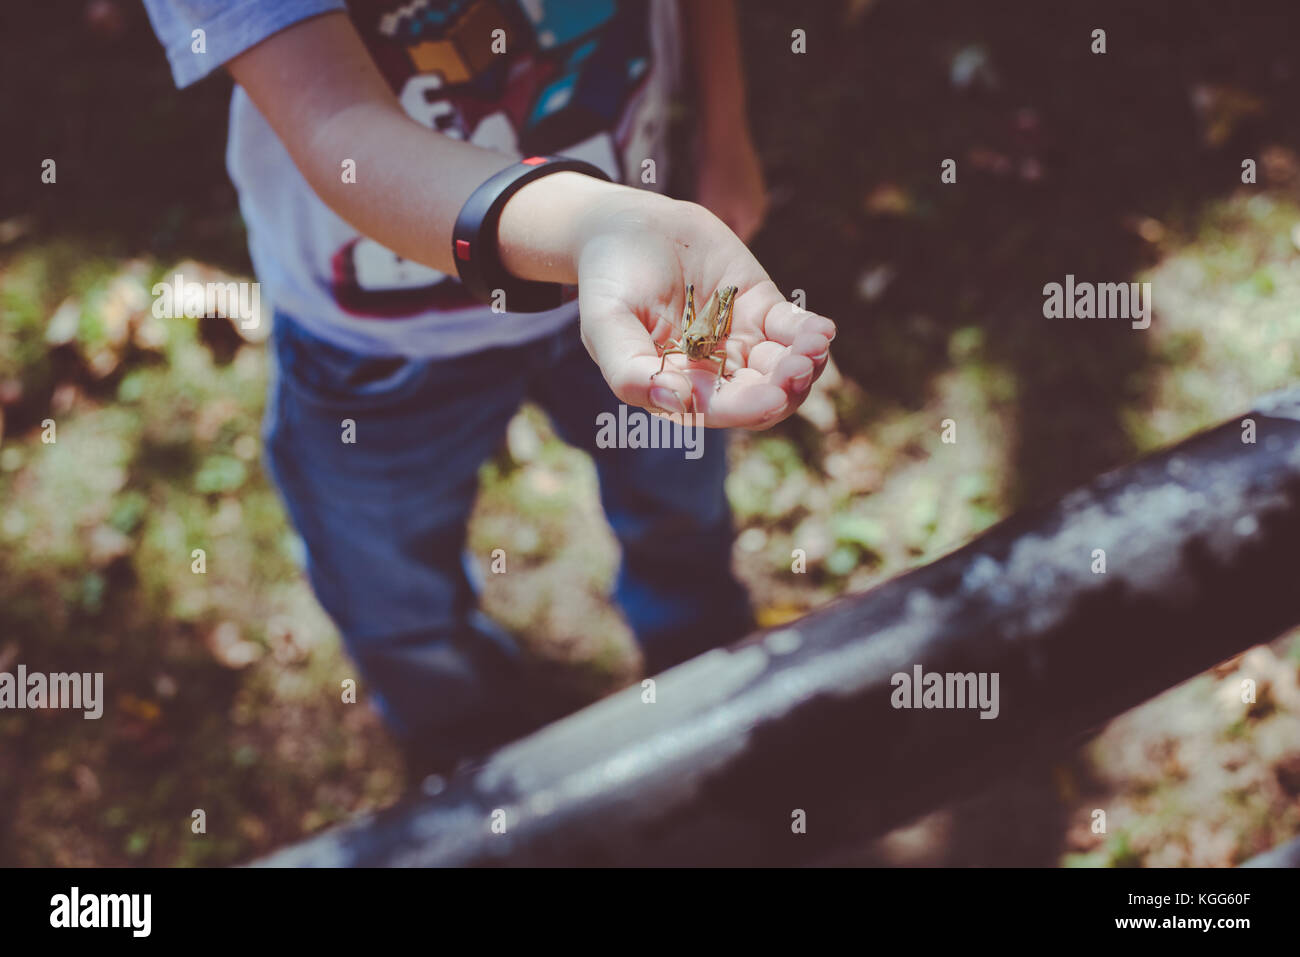 A child holding a grasshopper in their hand - Stock Image